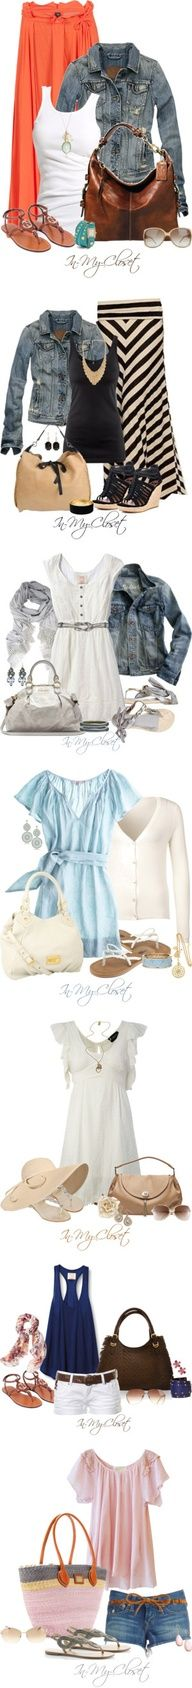 Hurry Up Summer! by in-my-closet on Polyvore